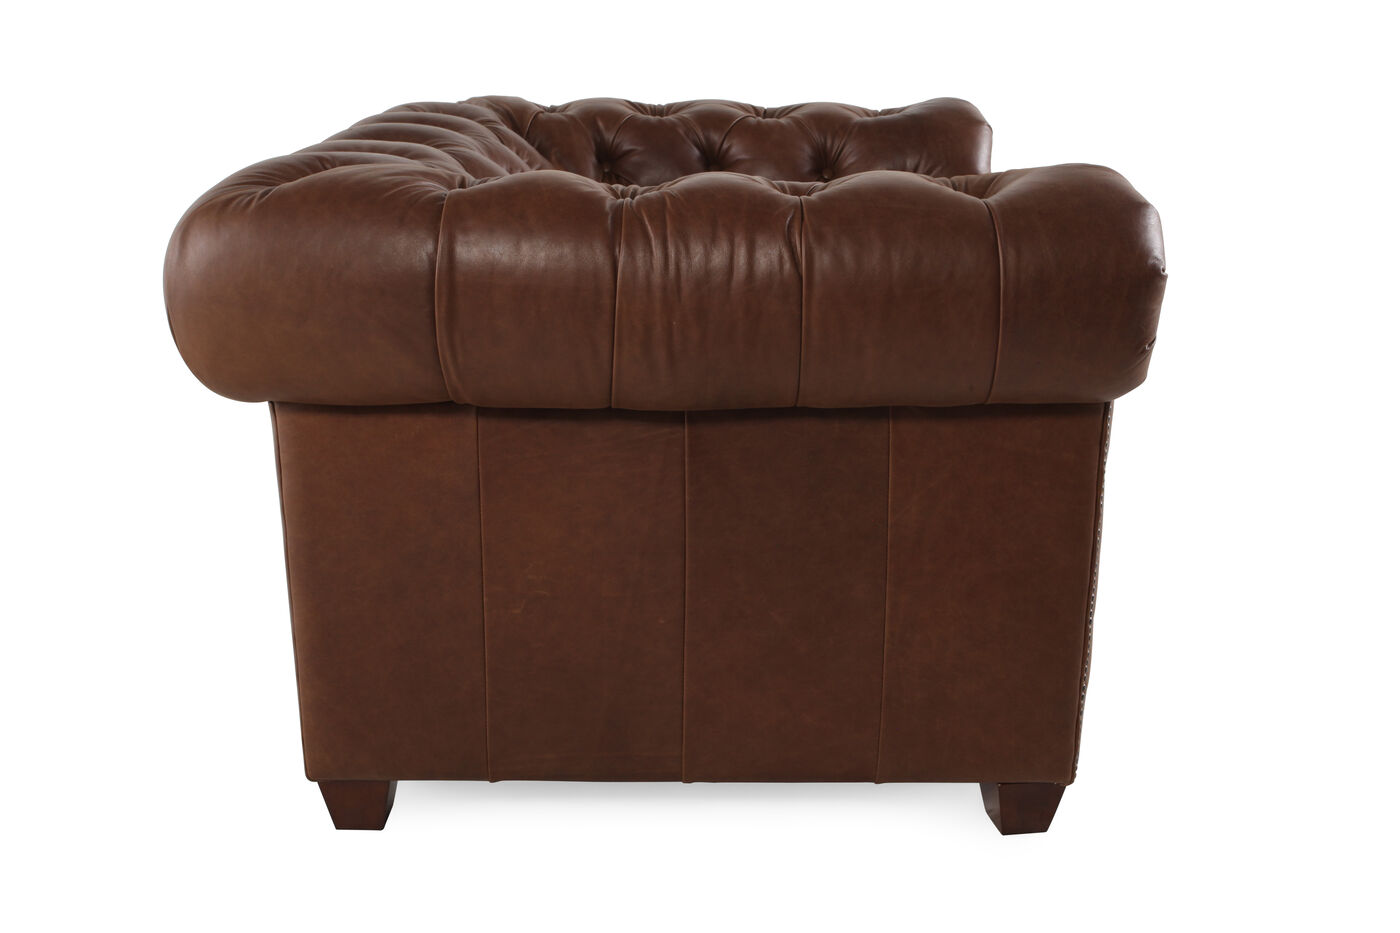 On Tufted Leather 42 Chair In Russet Brown